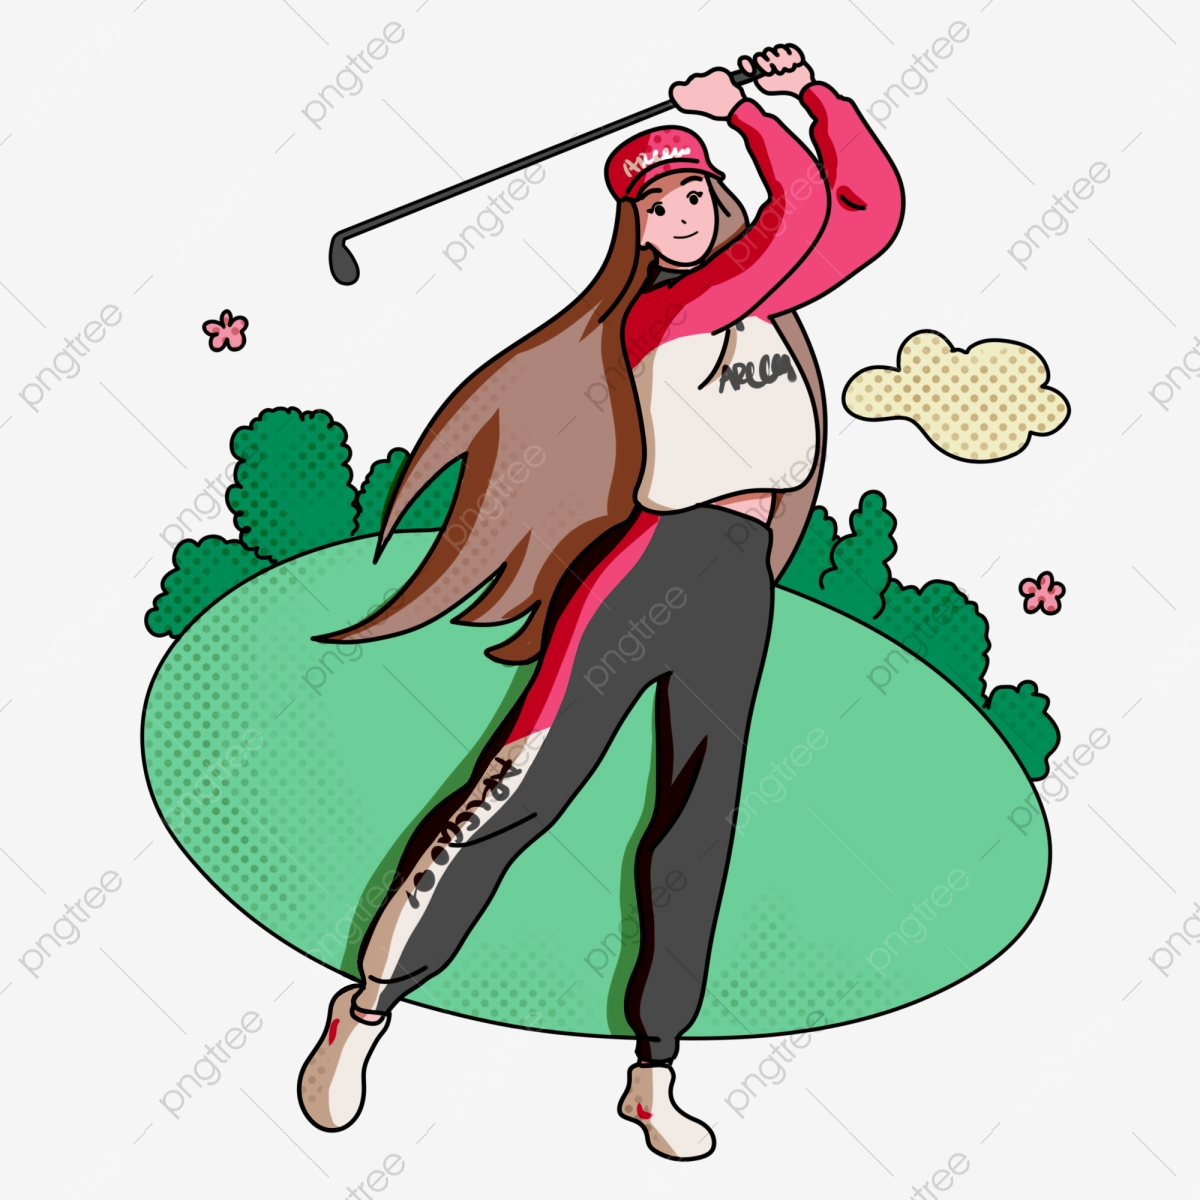 Free Lady Golfer Silhouette, Download Free Clip Art, Free Clip Art on  Clipart Library